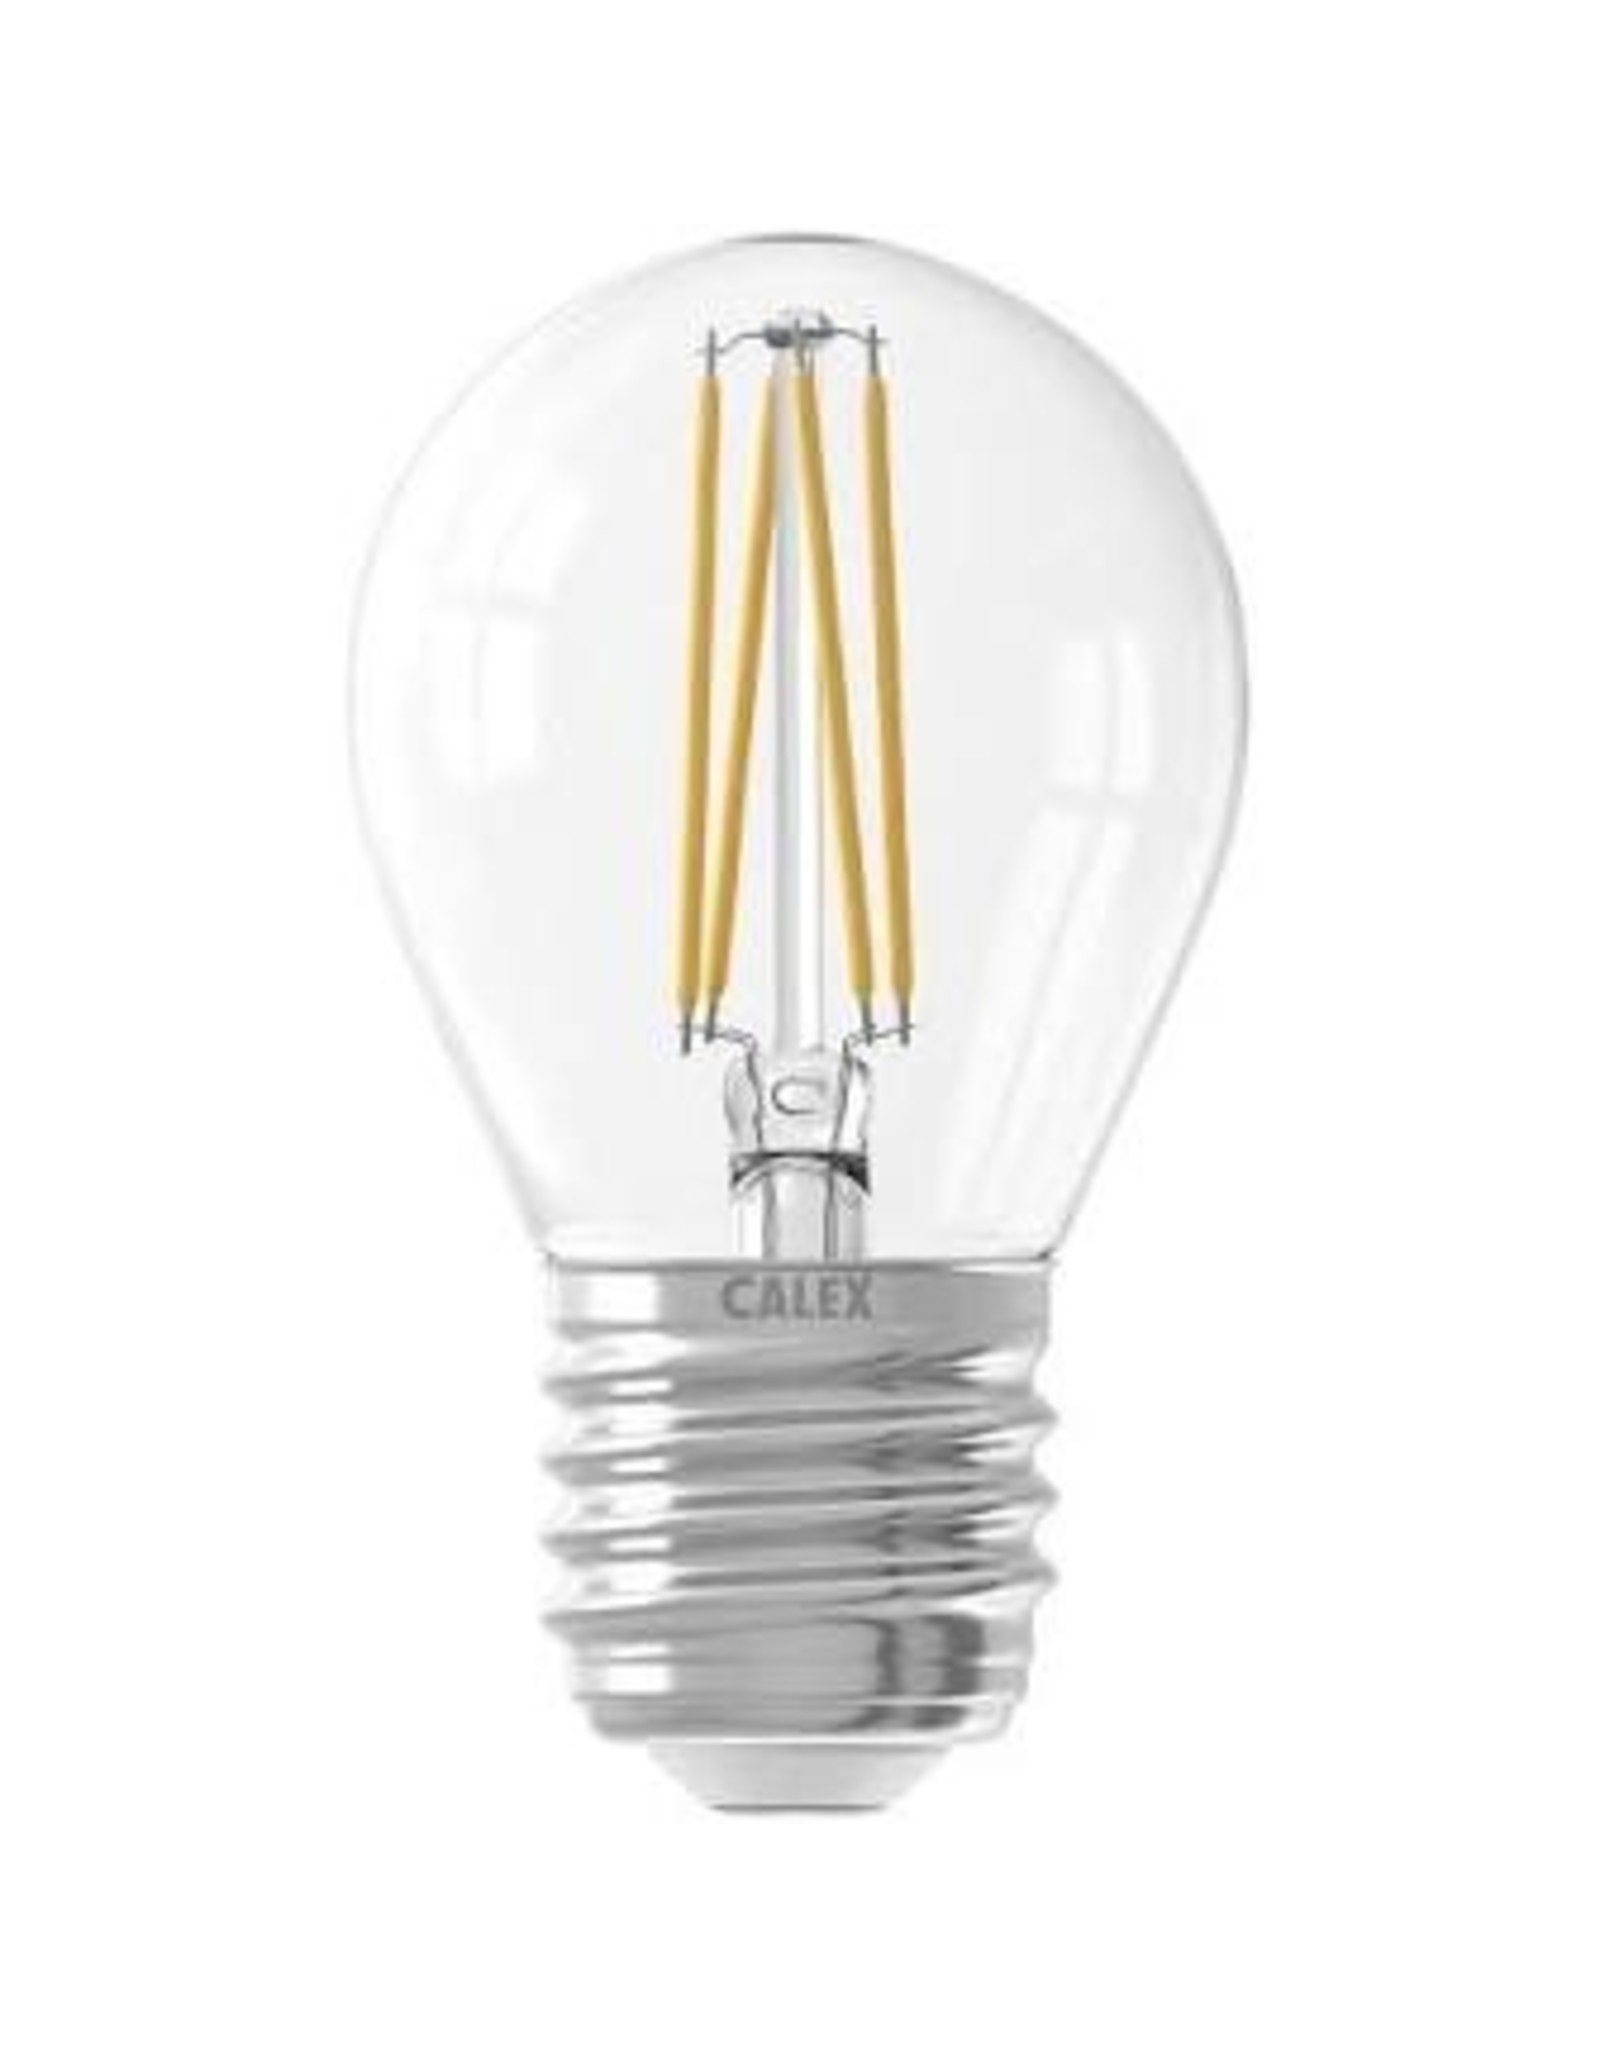 Calex LED Full Glass Filament Ball-lamp 220-240V 3,5W 350lm E27 P45, Clear 2700K CRI80 Dimmable, energy label A++